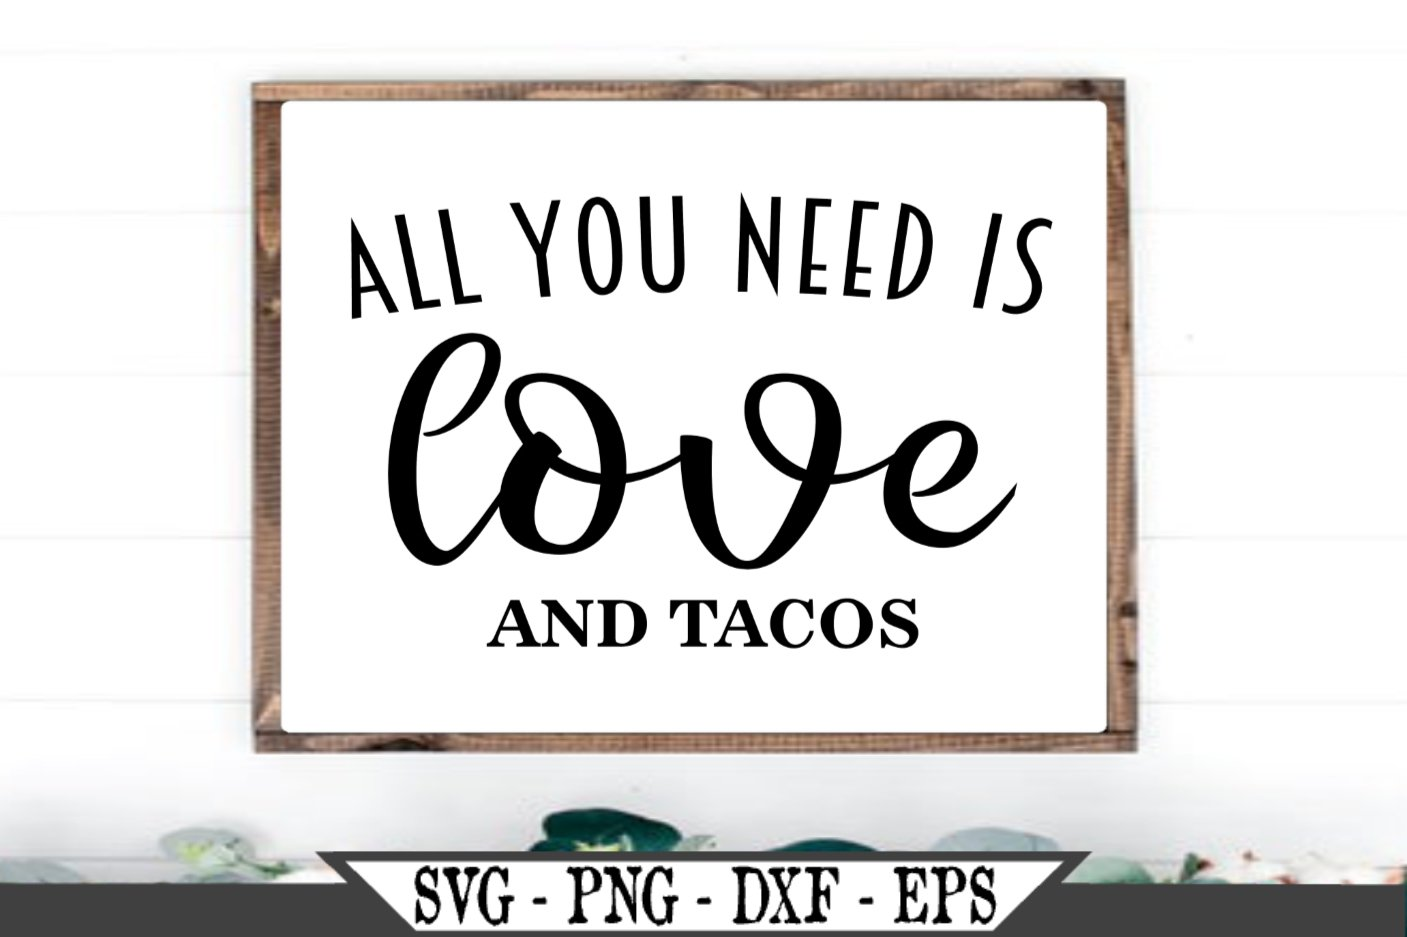 13+ All You Need Is Love And Tacos Svg Image